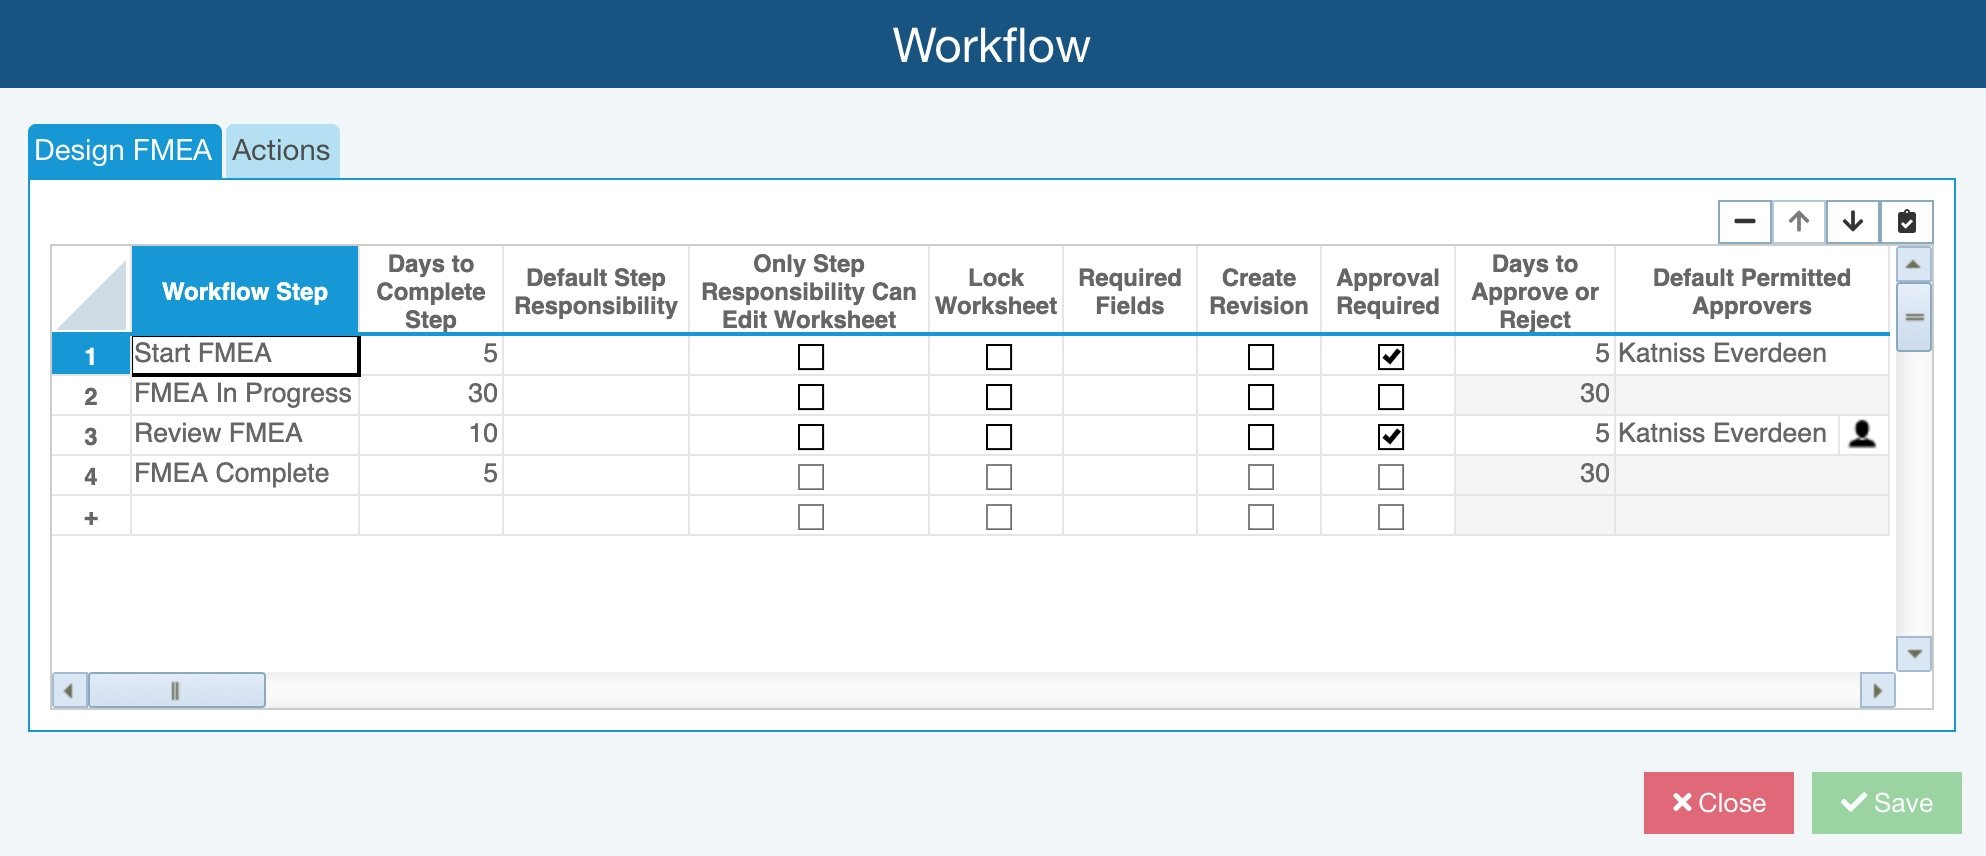 Example FMEA Workflow